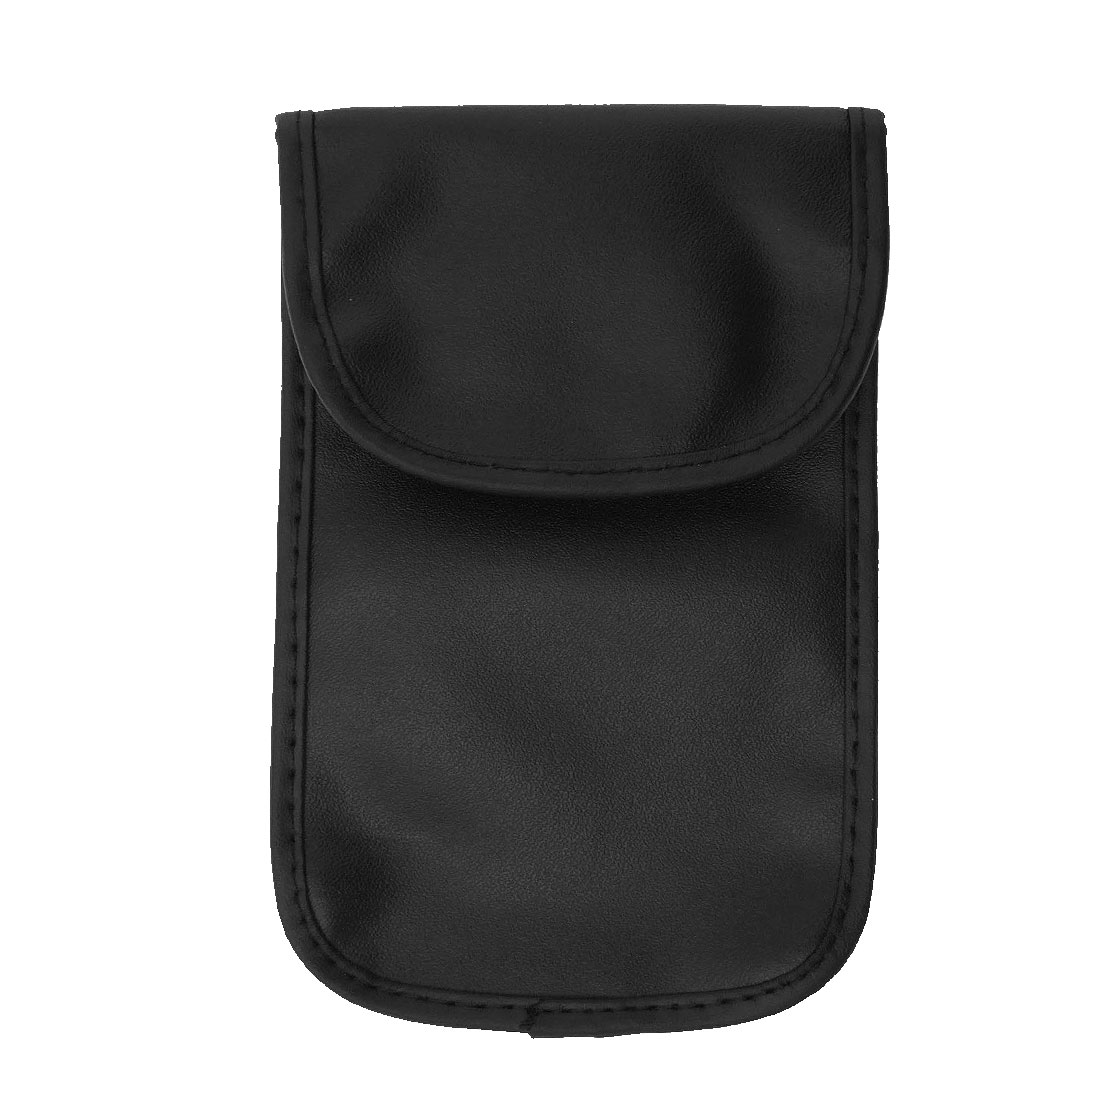 Black Mobile Cell Phone Pouch MP3 Screen Protector Leather Case Holder